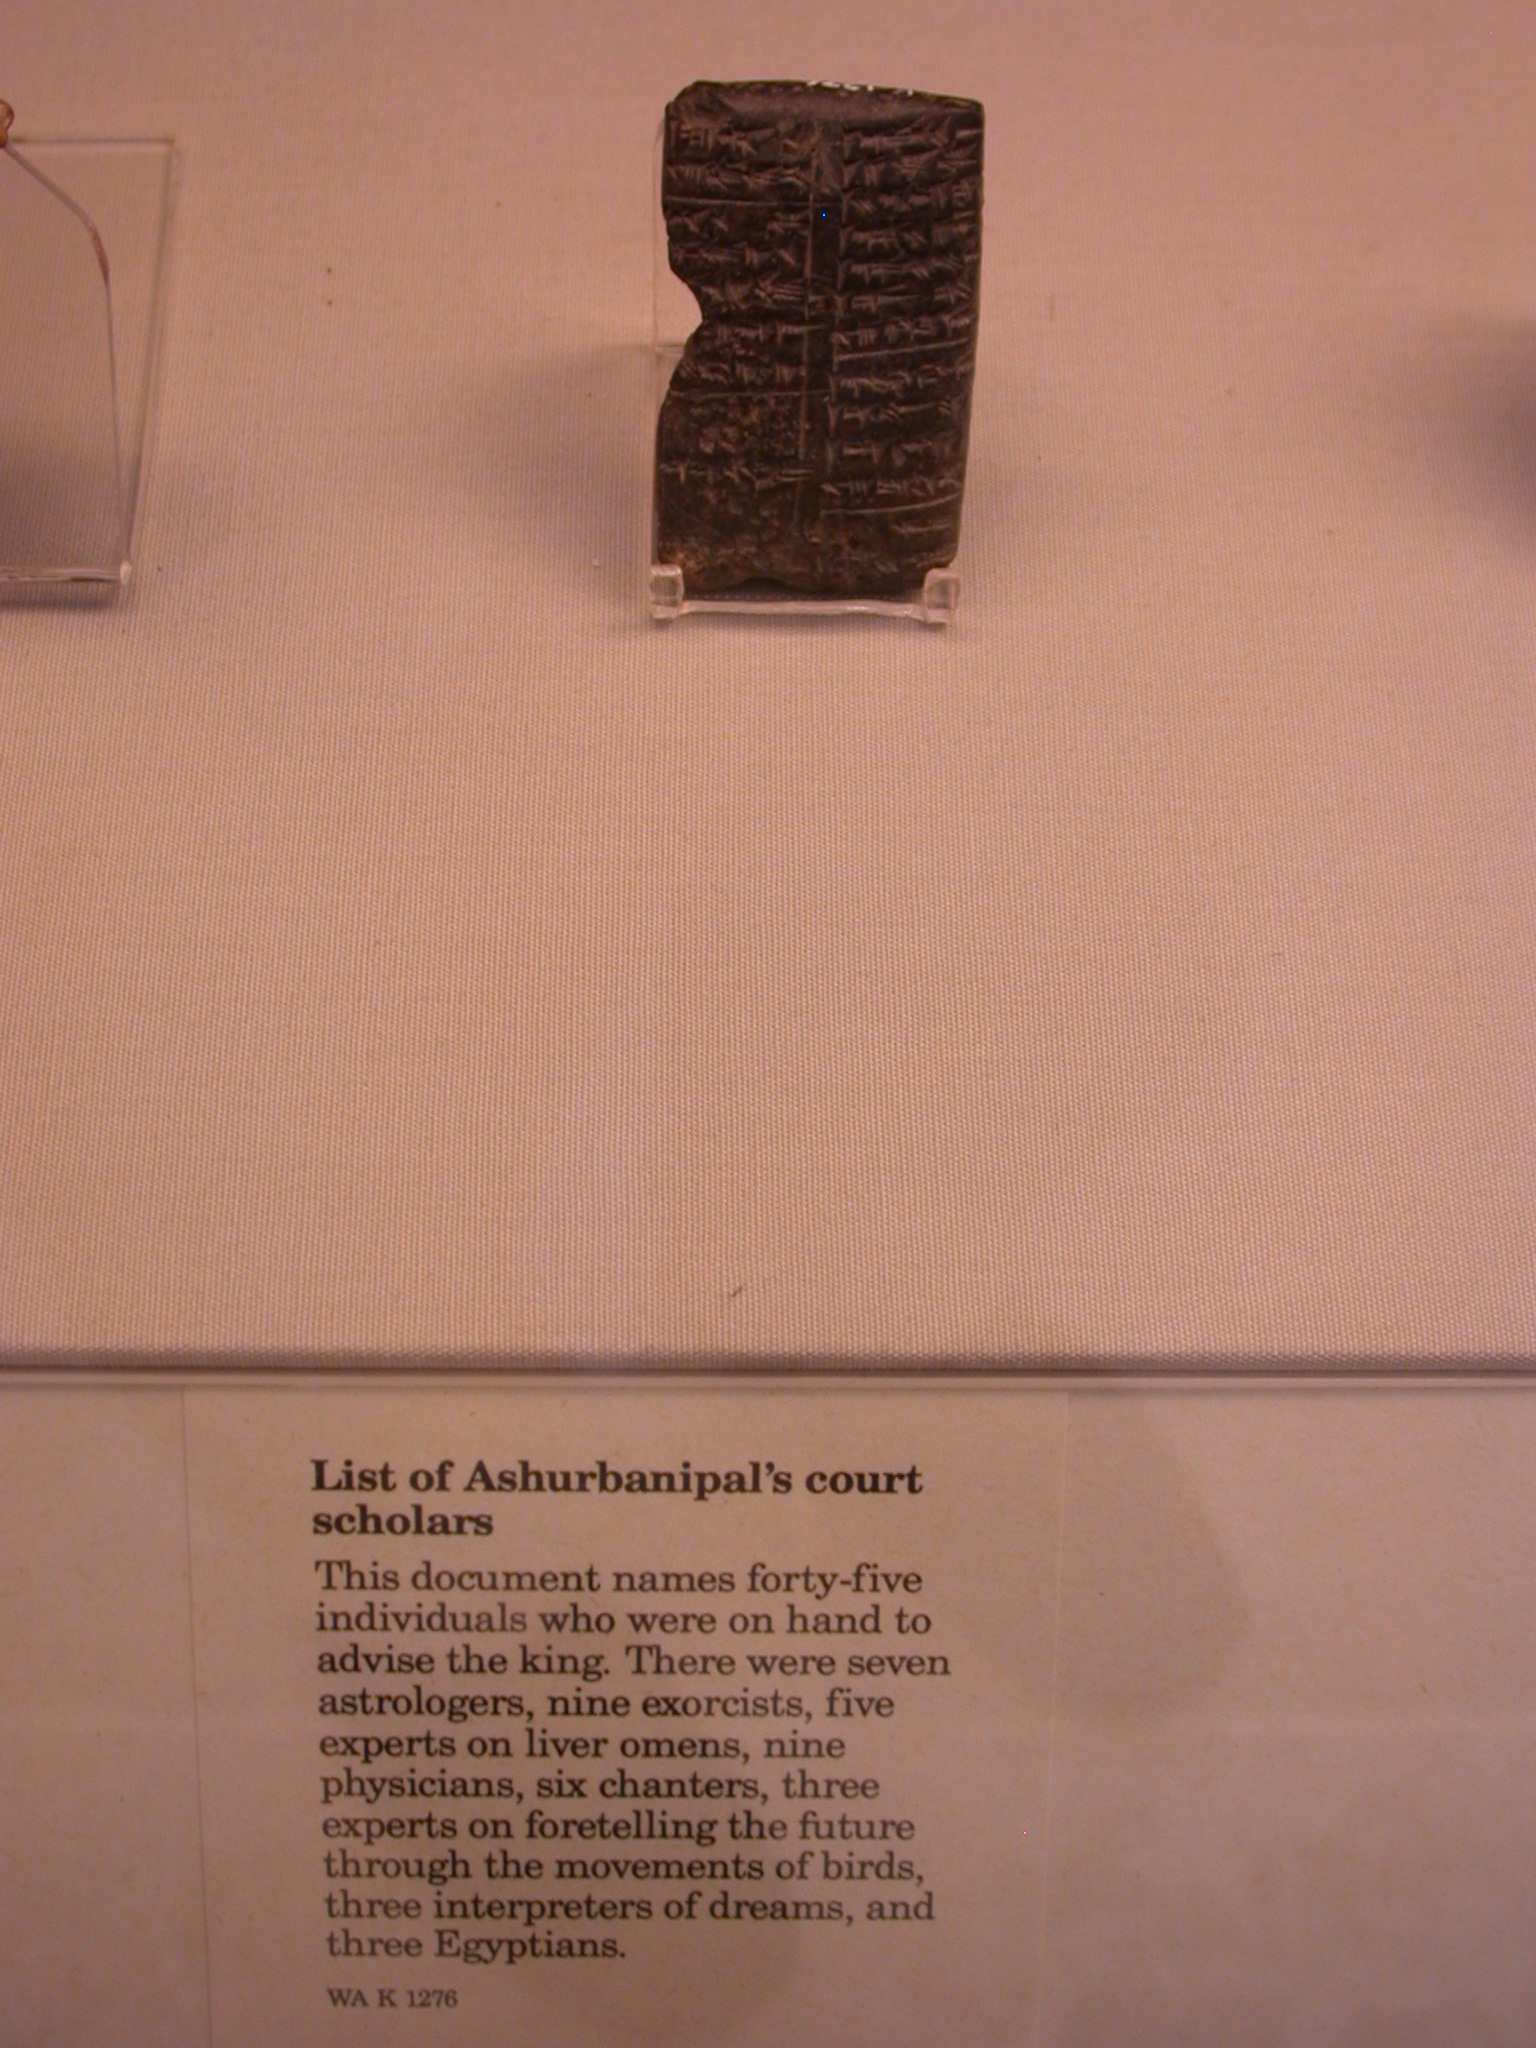 List of Court Scholars of Ashurbanipal Including Three Egyptians, Cuneiform Tablet, Assyria, in British Museum, London, England